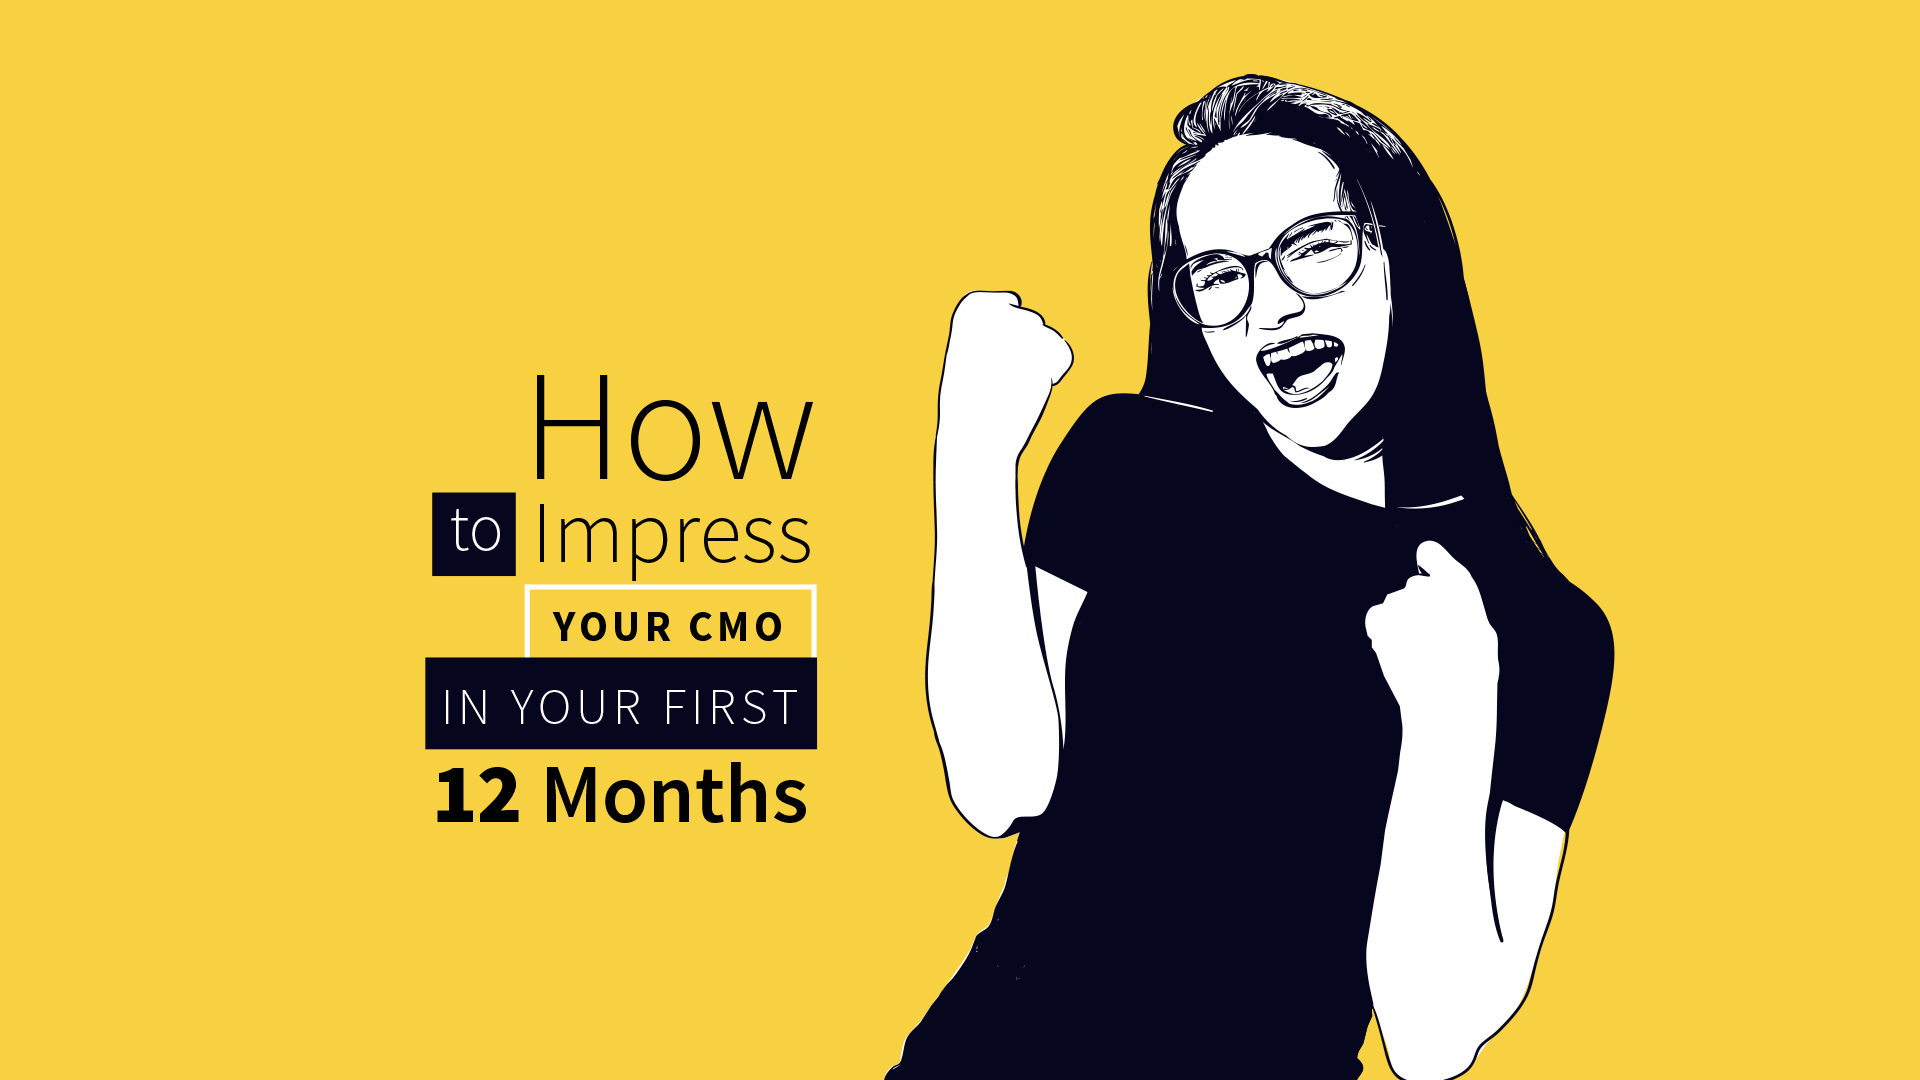 How to Impress Your CMO in the First 12 Months